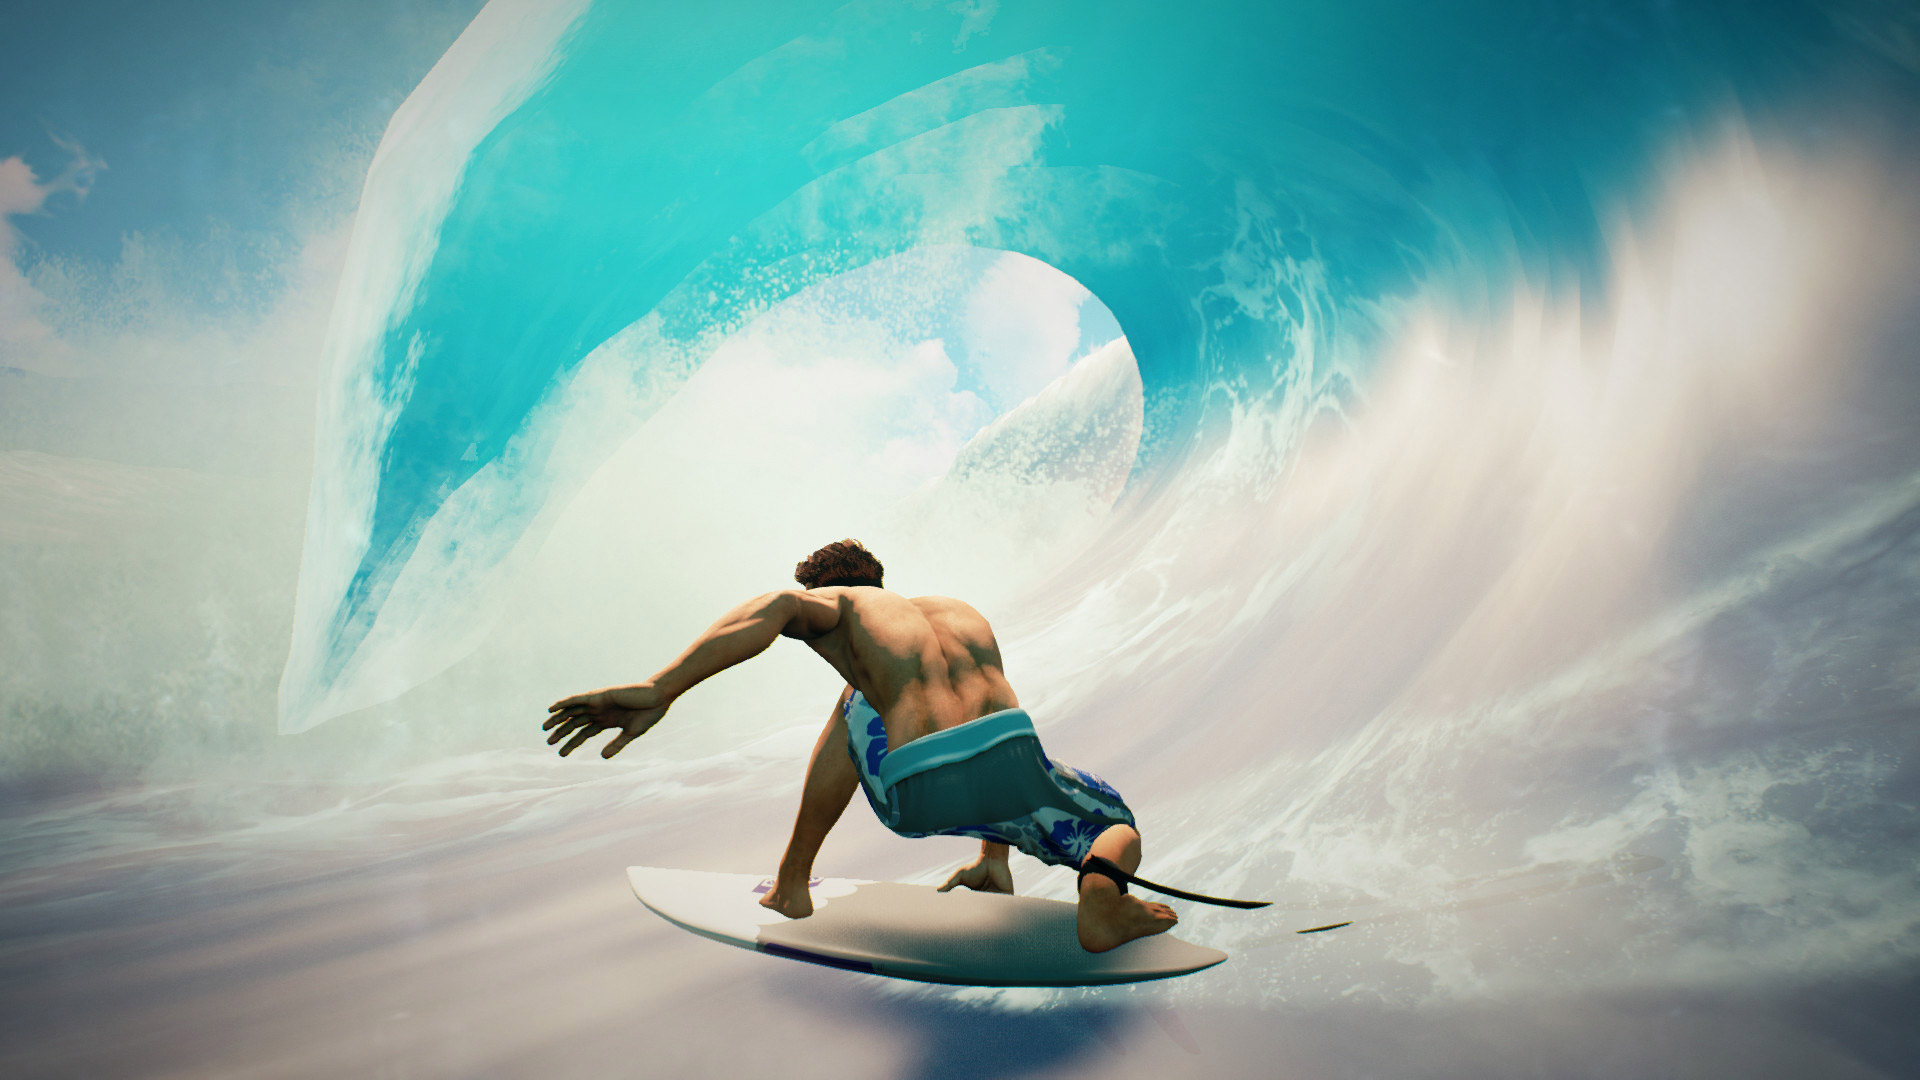 Free Surf World Series Wallpaper in 1920x1080